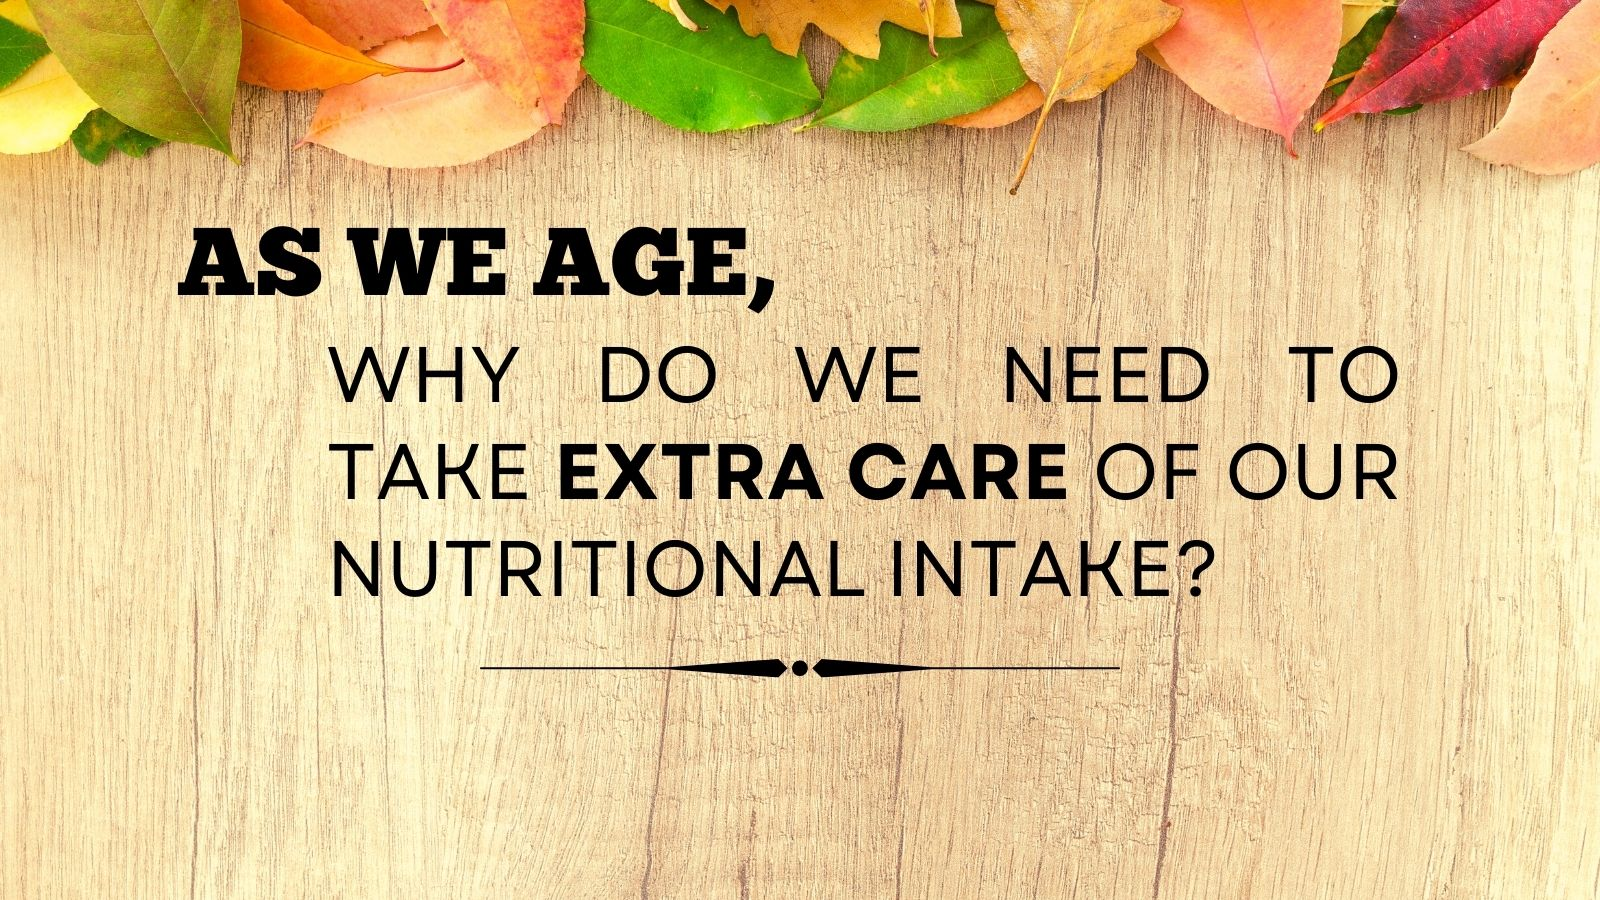 As we age, we need to take extra care of our nutrition